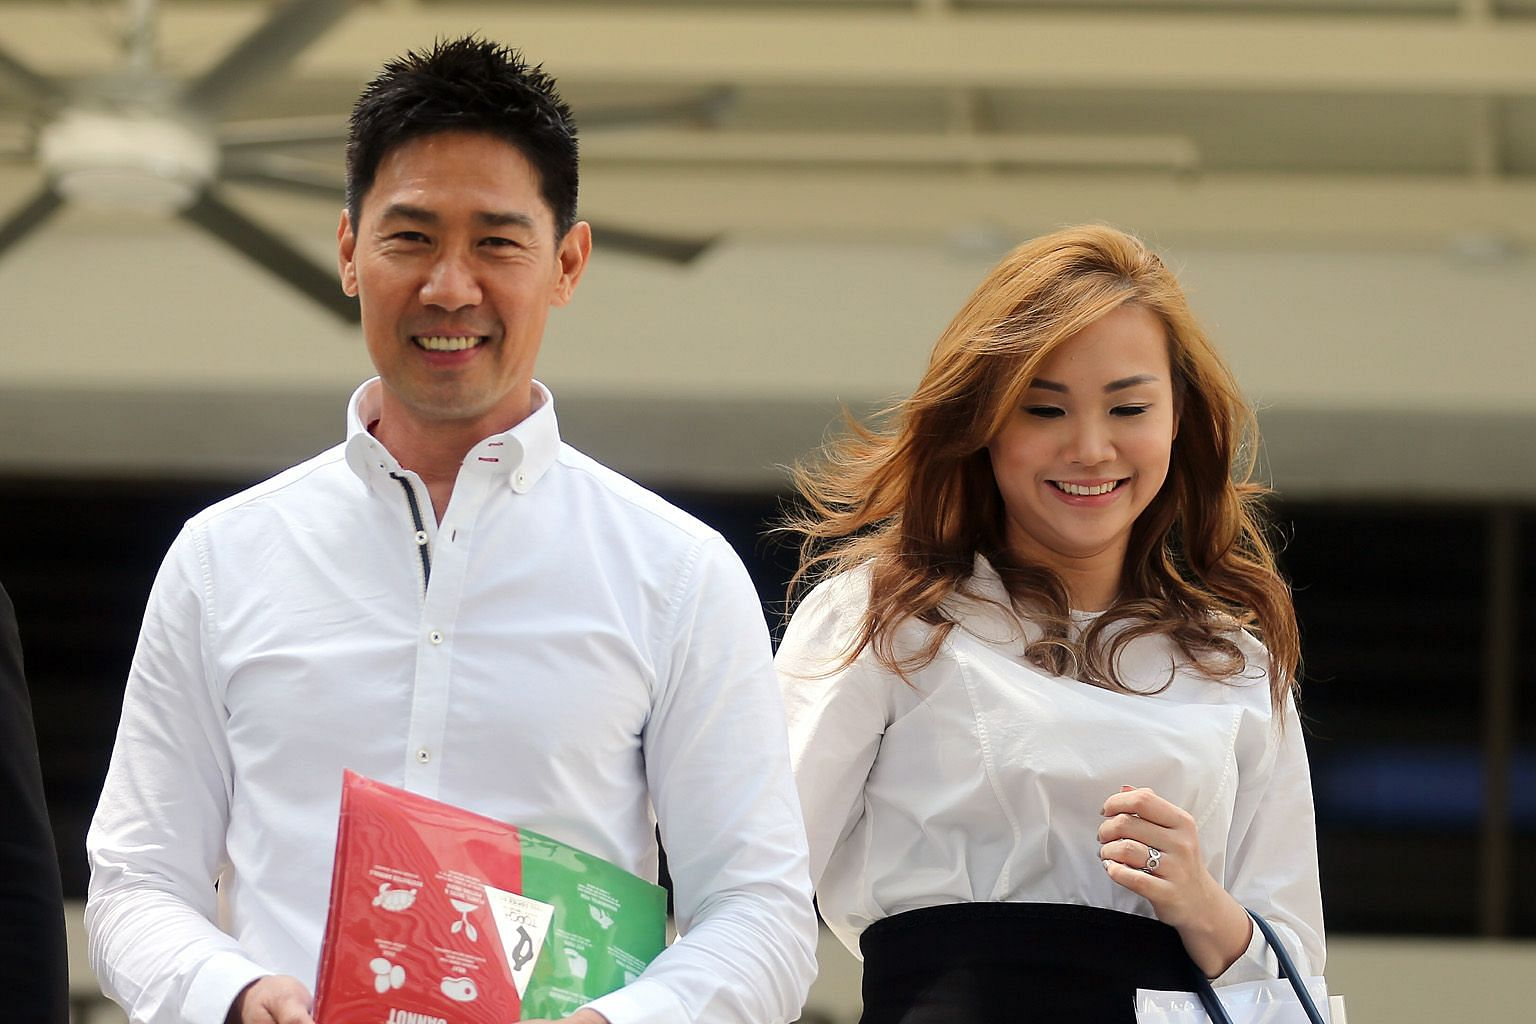 """Mr Edmund Chen and Ms Karen Ho Kai Lun leaving the State Courts yesterday. In a joint statement, they said they had """"mutually and amicably"""" resolved their disputes through mediation."""